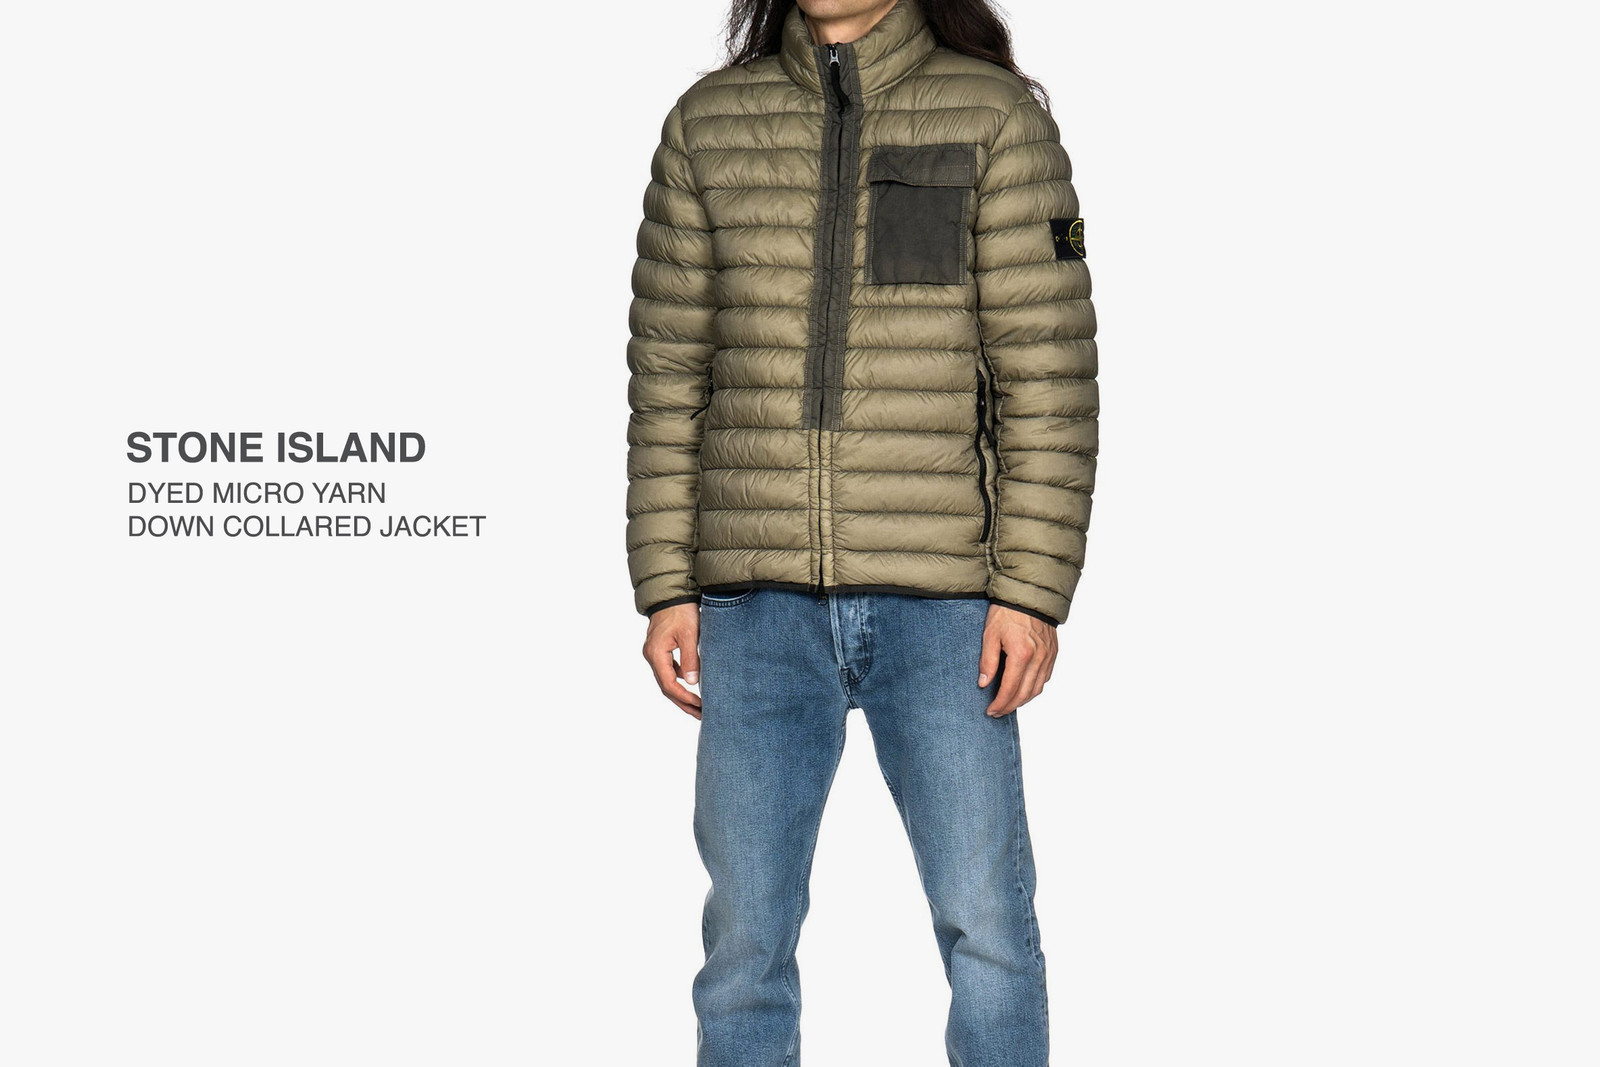 Autumn jackets Fall coats Fall Outerwear Winter coats Coats for men Fall jackets fall jackets 2018 winter casual jackets mens fall jackets  best mens fall jackets  lightweight fall jackets autumn jackets UNDERCOVER Dries Van Noten LOEWE Junya Watanabe MAN The North Face visvim GmbH 1017 ALYX 9SM Doublet Stone Island AFFIX Gosha Rubchinskiy adidas Blackmeans Carhartt WIP Brain Dead 032c CALVIN KLEIN JEANS EST. 1978